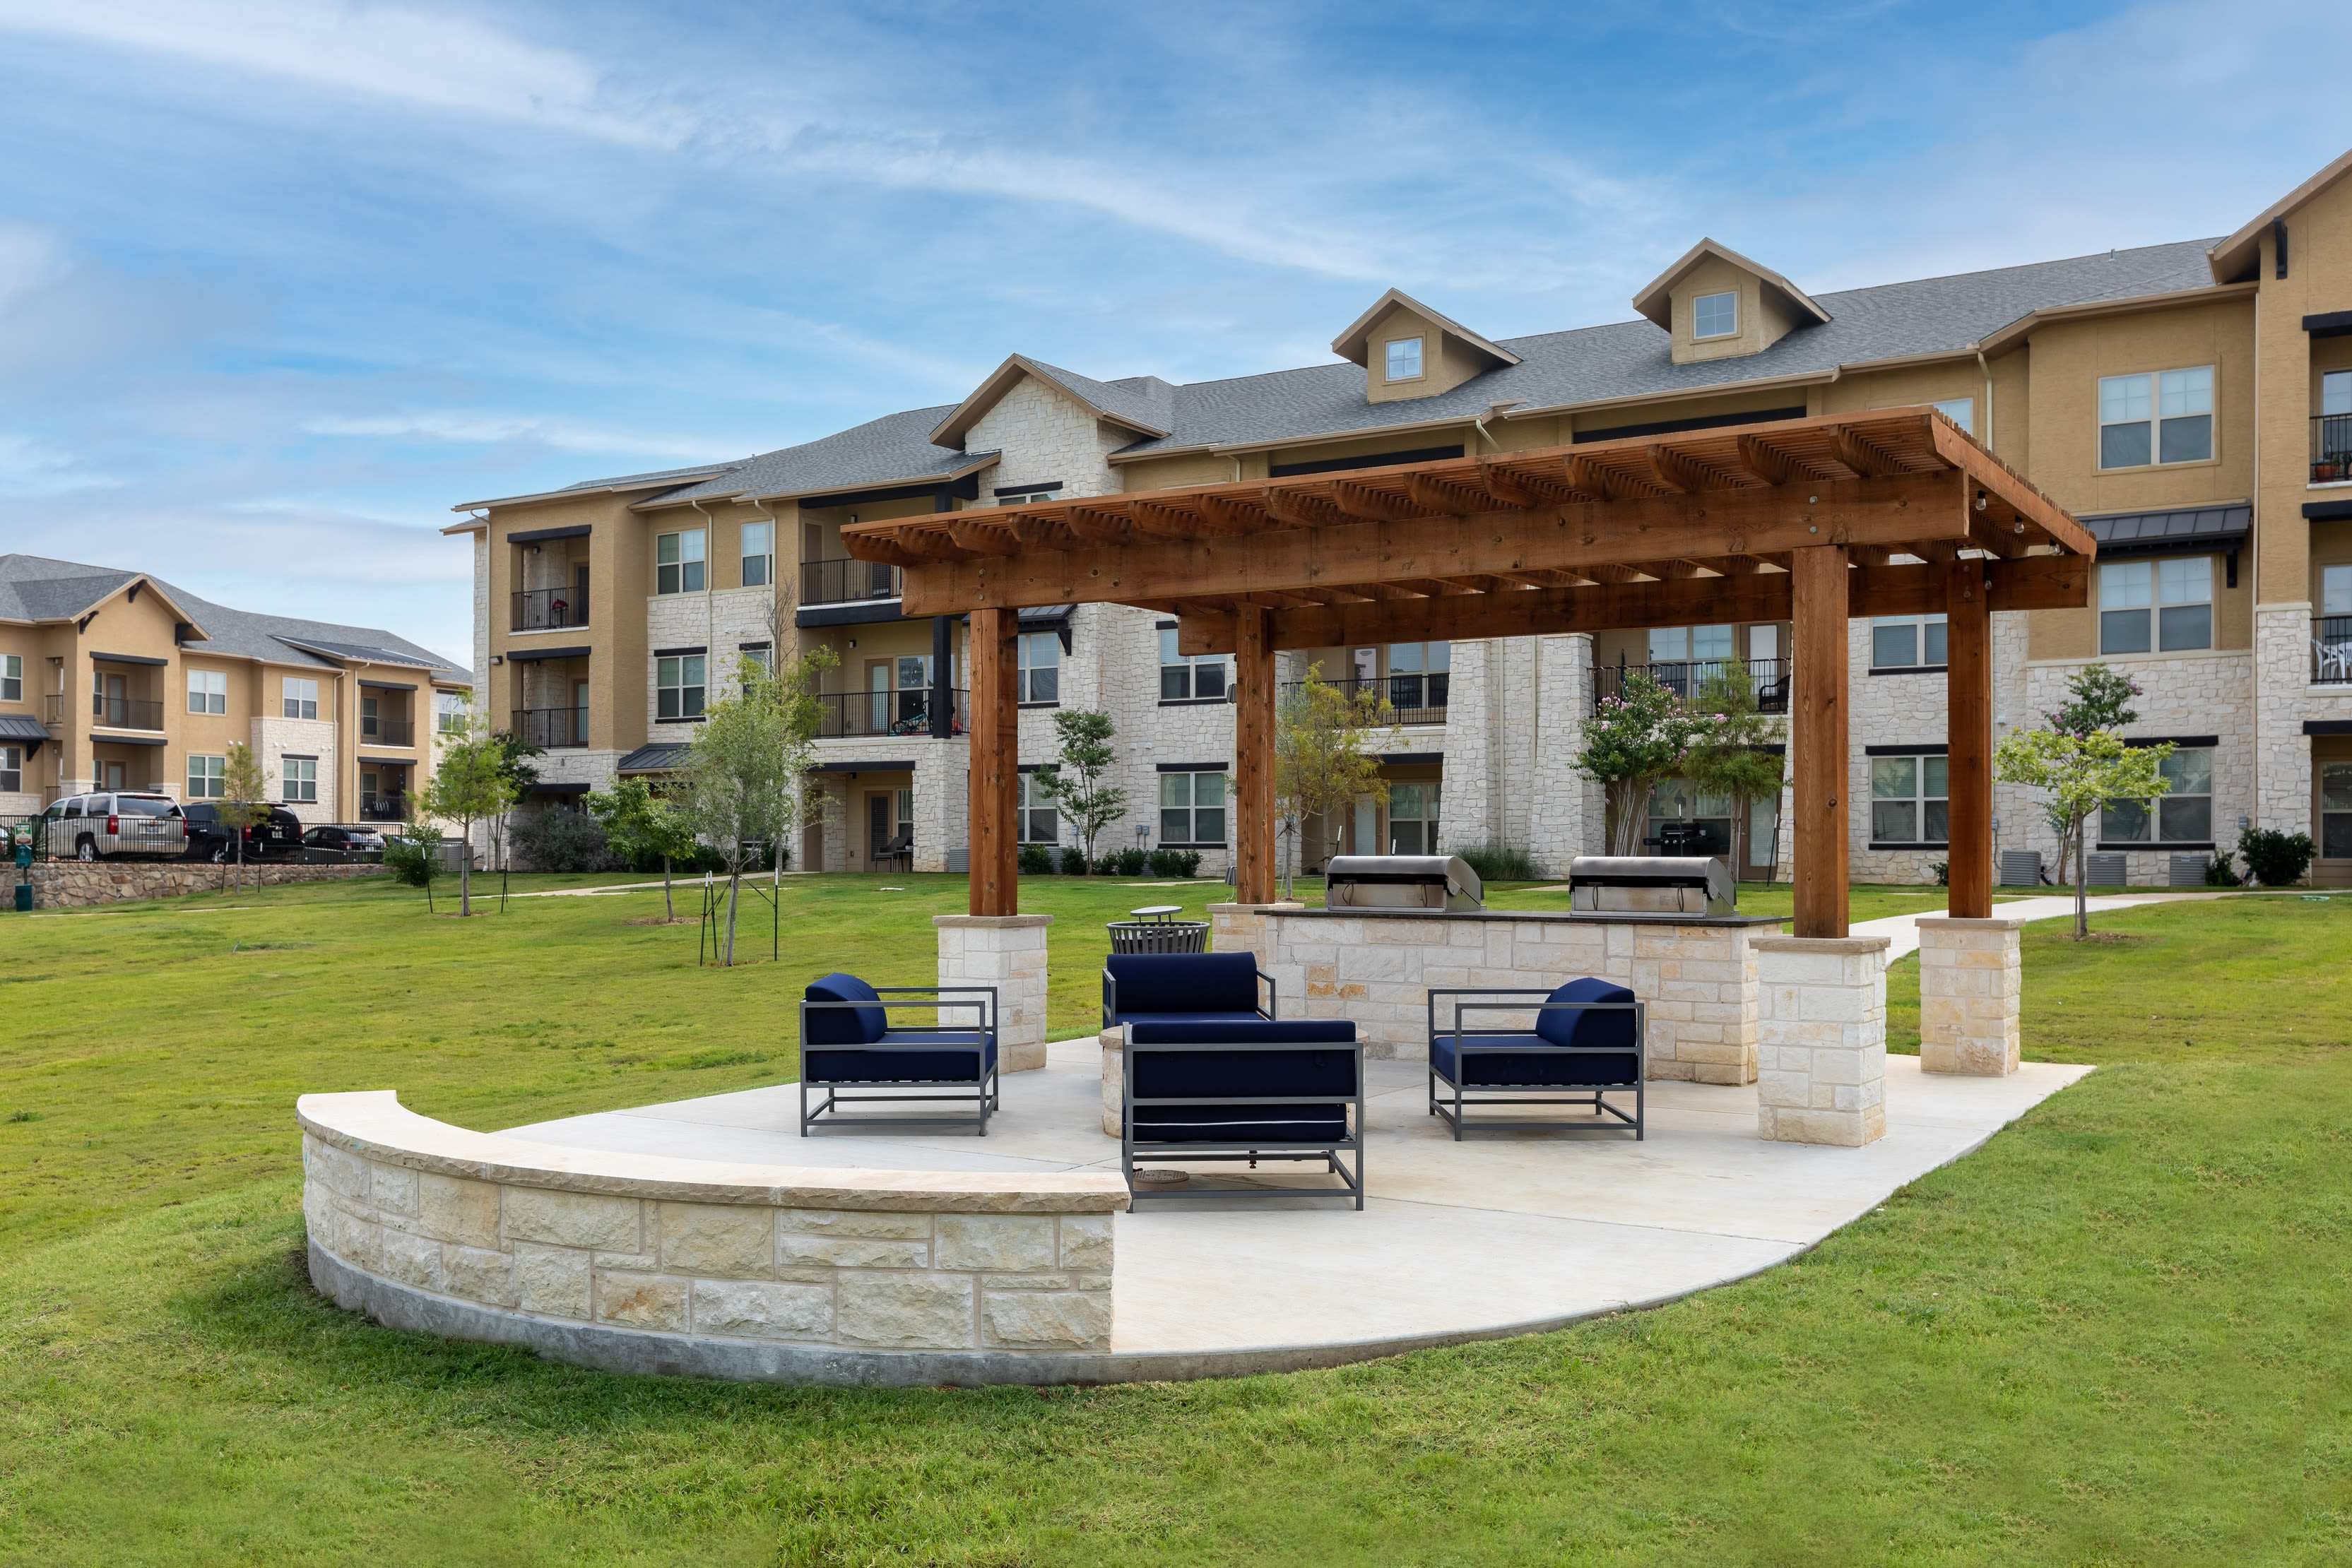 Outdoor resident space at 4 Corners Apartments in Frisco, Texas